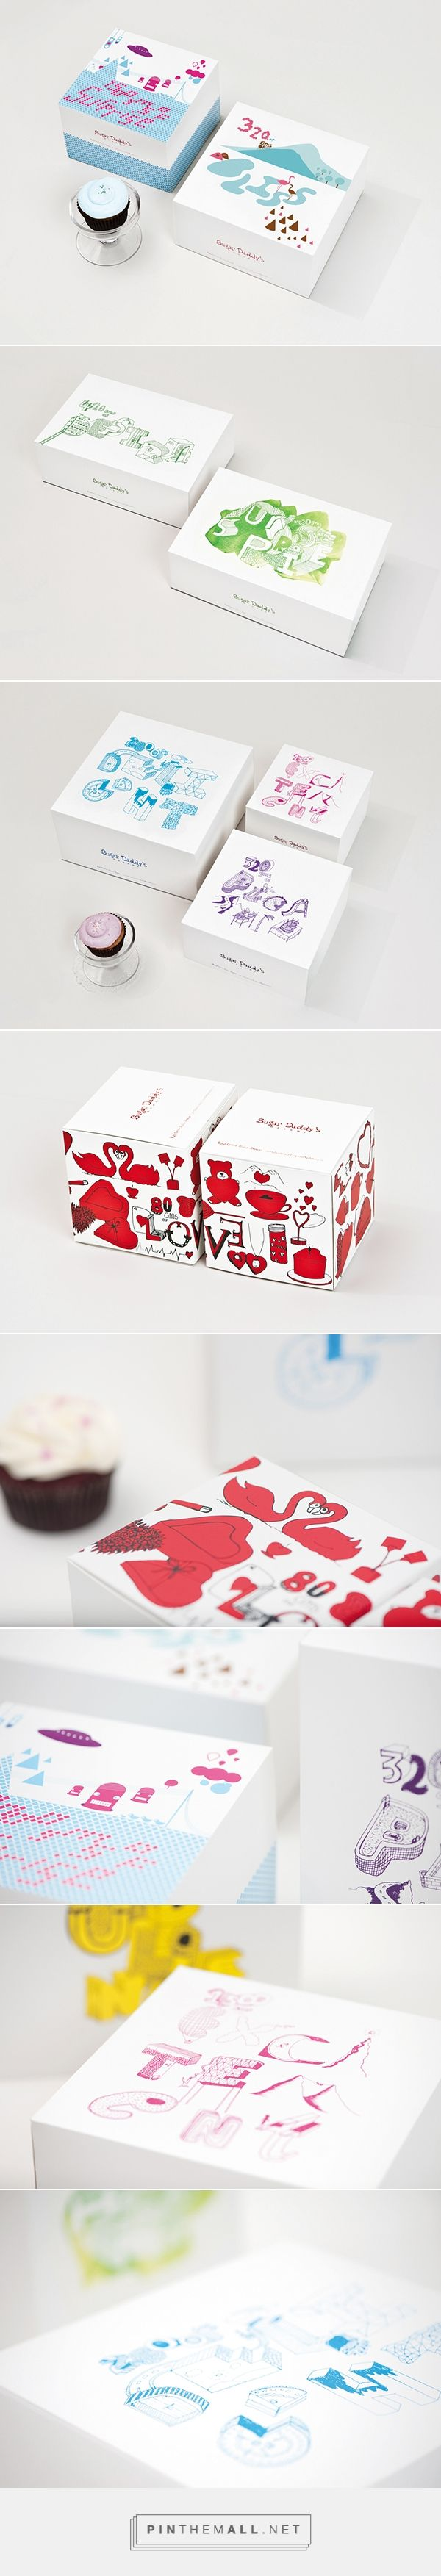 Cake Box Packaging design on Behance by Kapil Bhimekar curated by Packaging Diva PD. Sugar Daddy's bakery is famous for its unique cupcakes. The bakery wanted this uniqueness to reflect in their packaging too